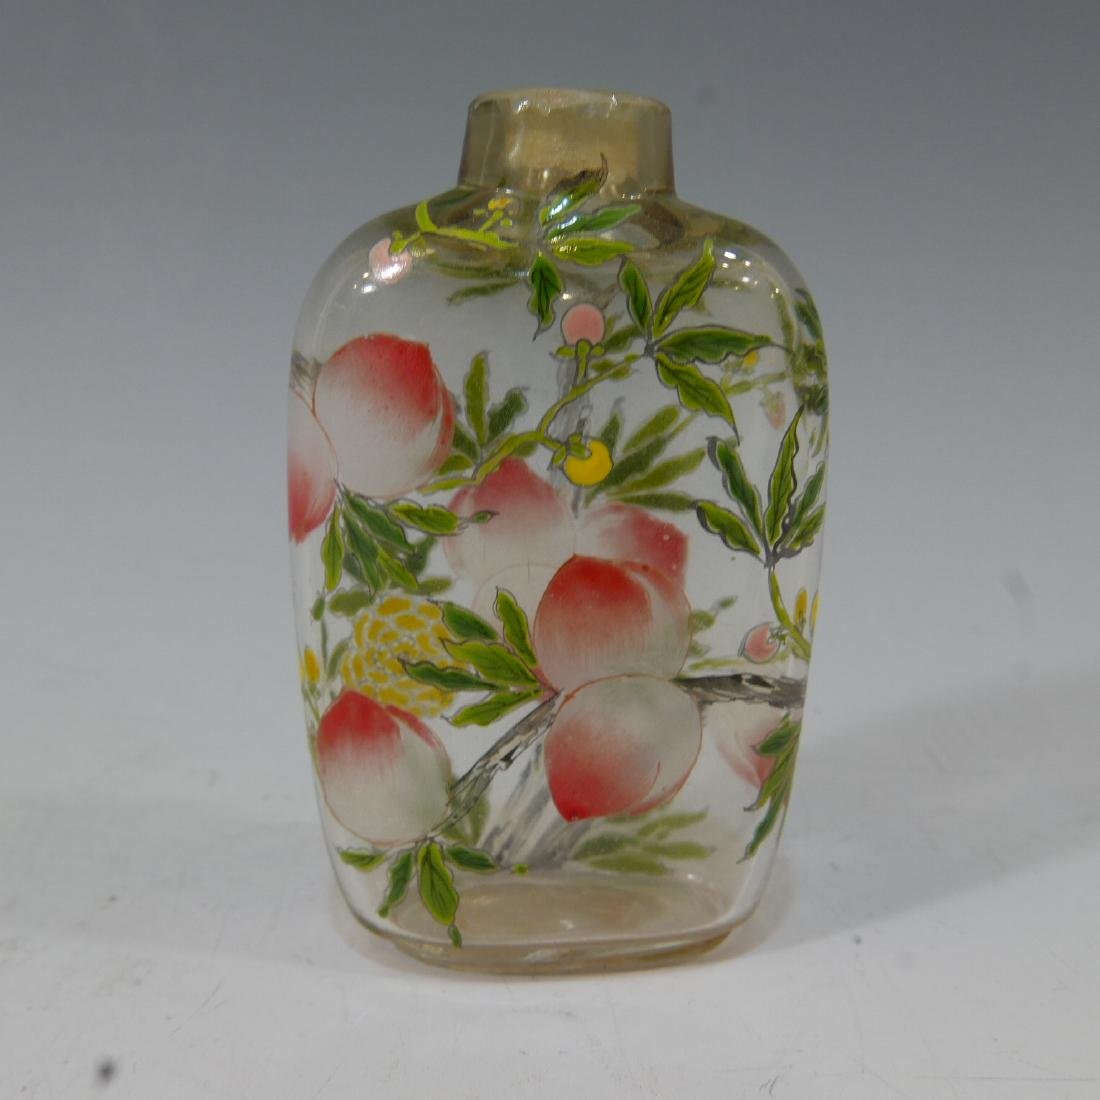 ANTIQUE ROCK CRYSTAL ENAMELED SNUFF BOTTLE - 2